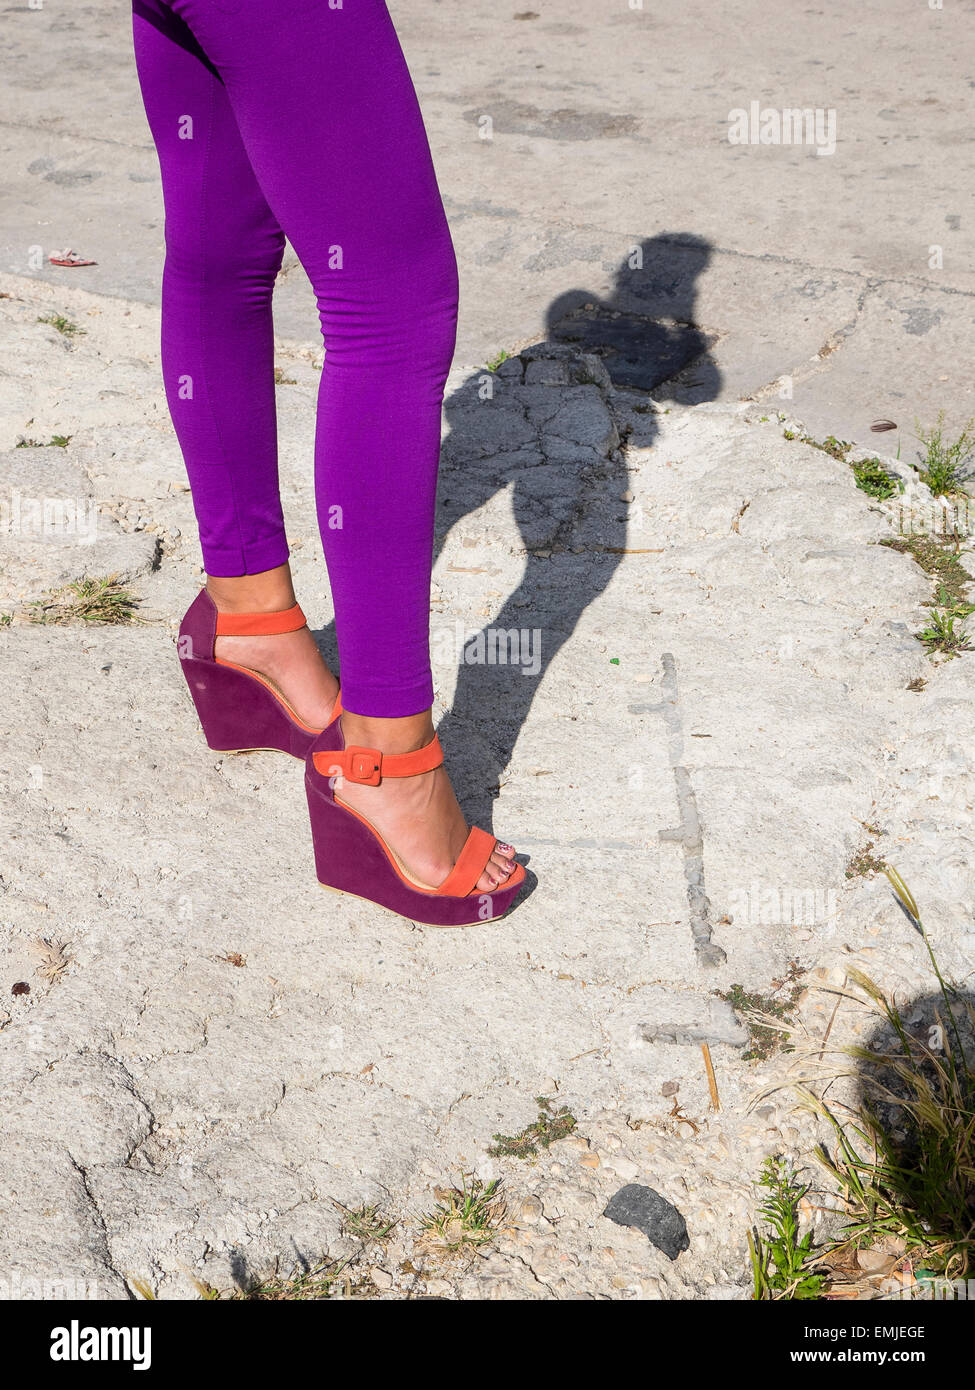 An image of a woman's purple tights, from waist down and purple and orange shoes. The woman casts a full figure - Stock Image